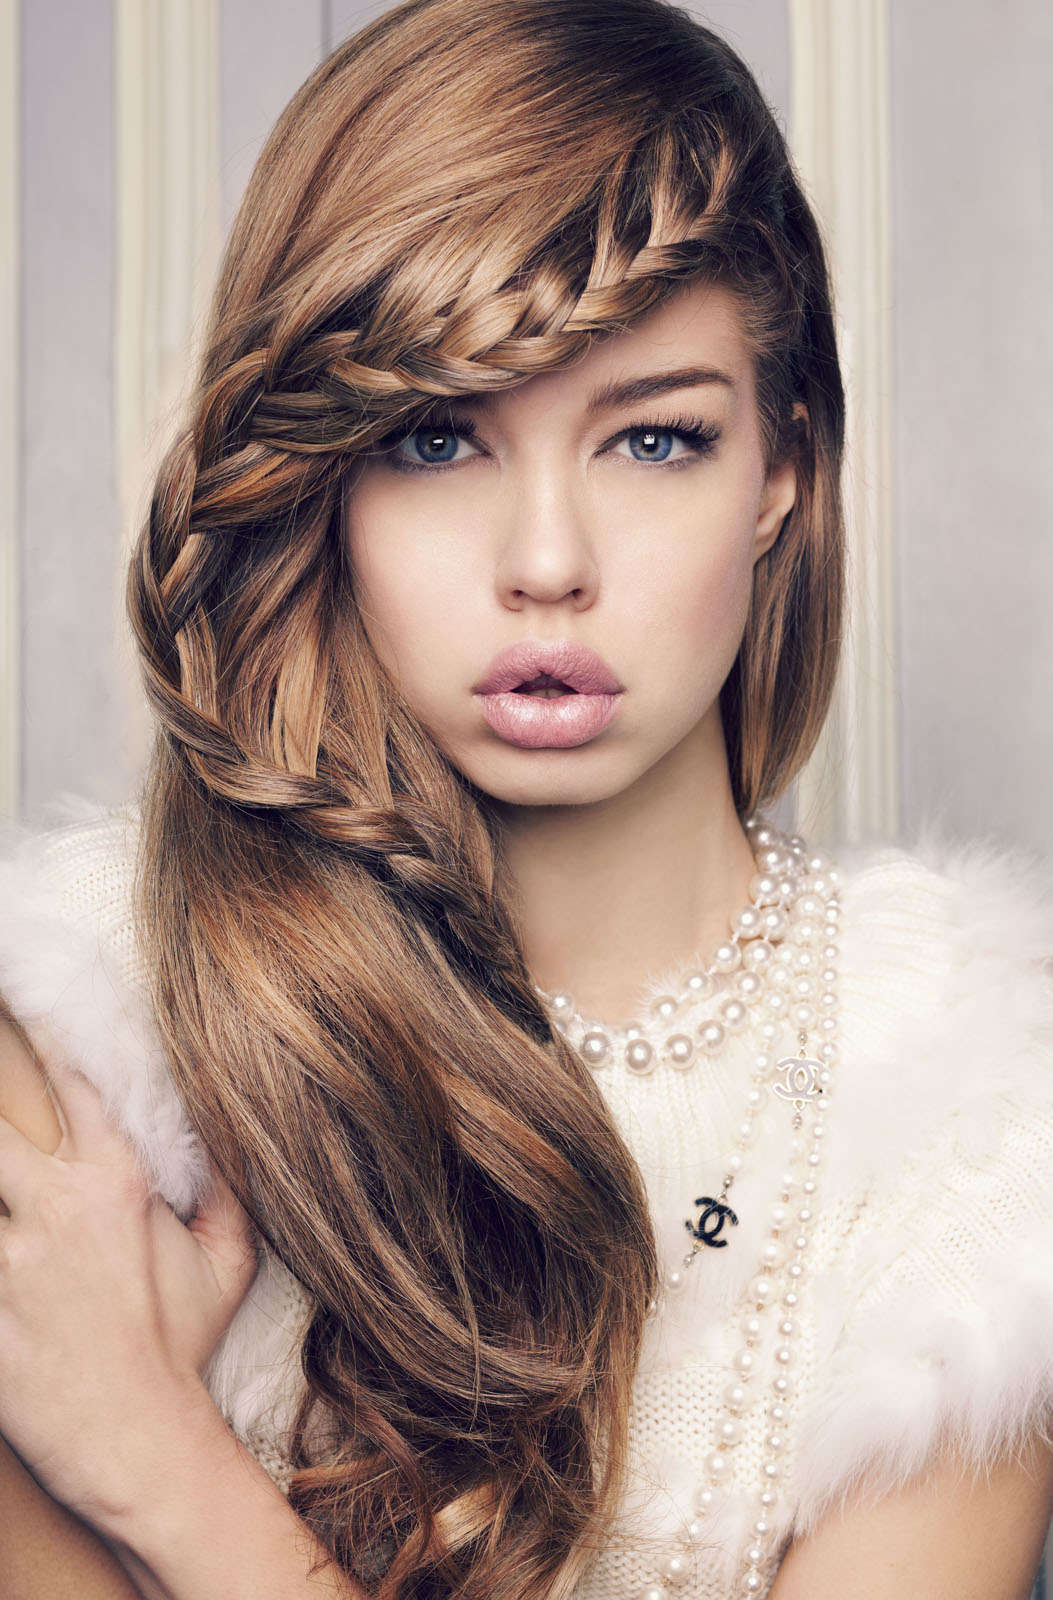 Fine 24 Gorgeously Creative Braided Hairstyles For Women Styles Weekly Short Hairstyles Gunalazisus